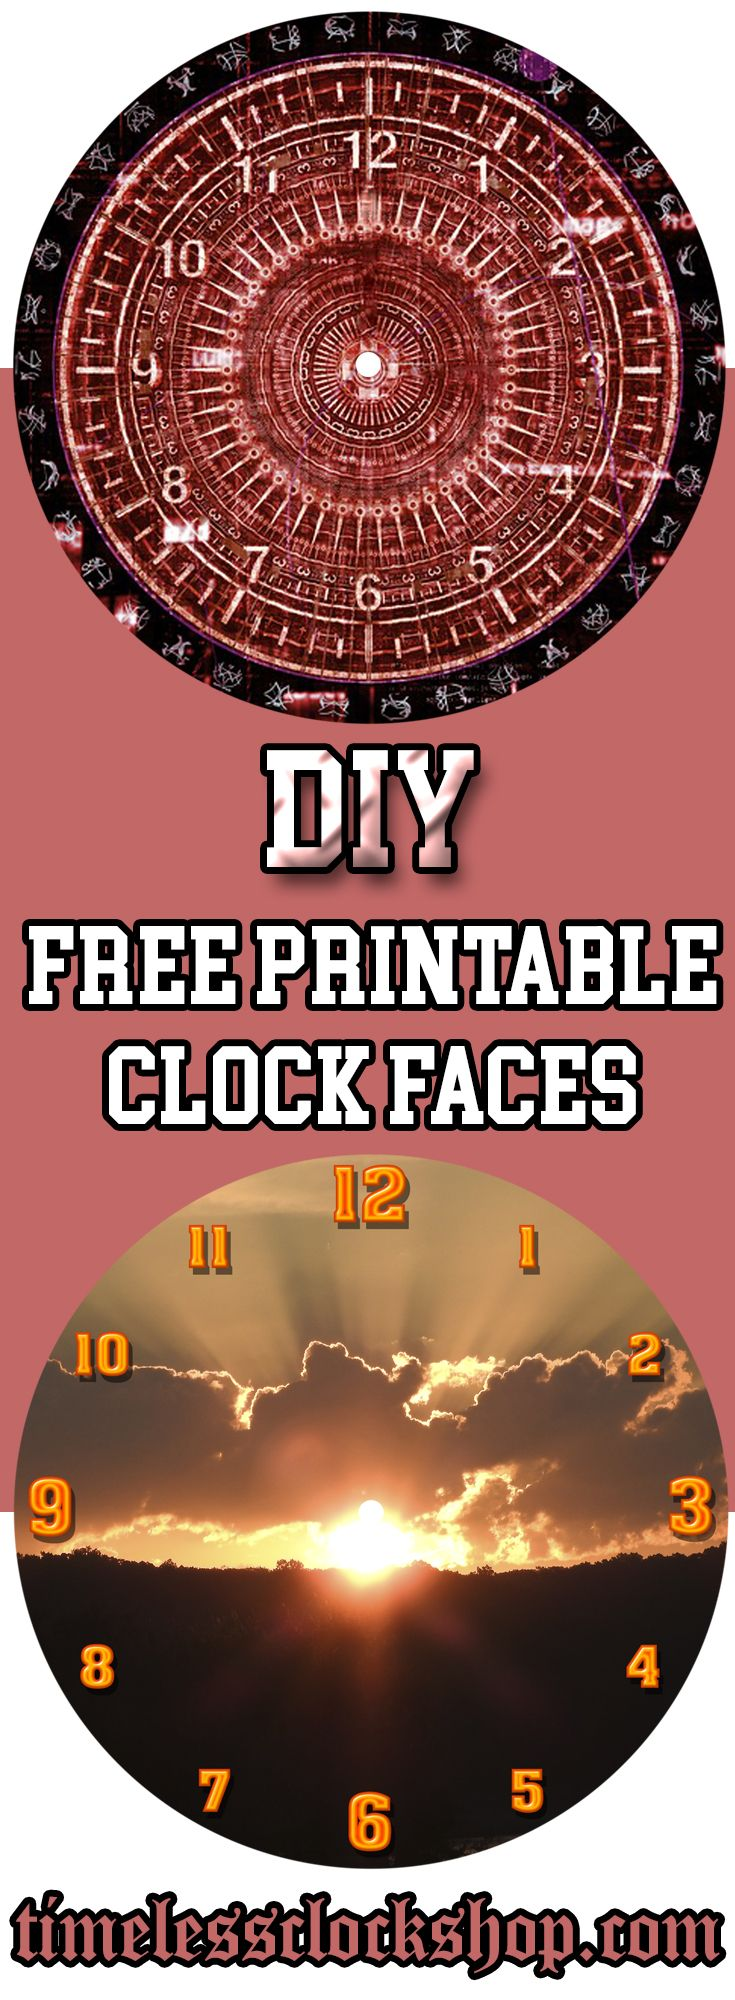 """If You Are Looking For Creative Gift Ideas, Sincerely Thoughtful Gifts, Or That """"Challenging"""" Gifts For Wife, The Timeless Clock Shop Can Help.  FREE Pics and Graphics To Aid With Your Online Clock Designs or Your DIY Wall Decor."""